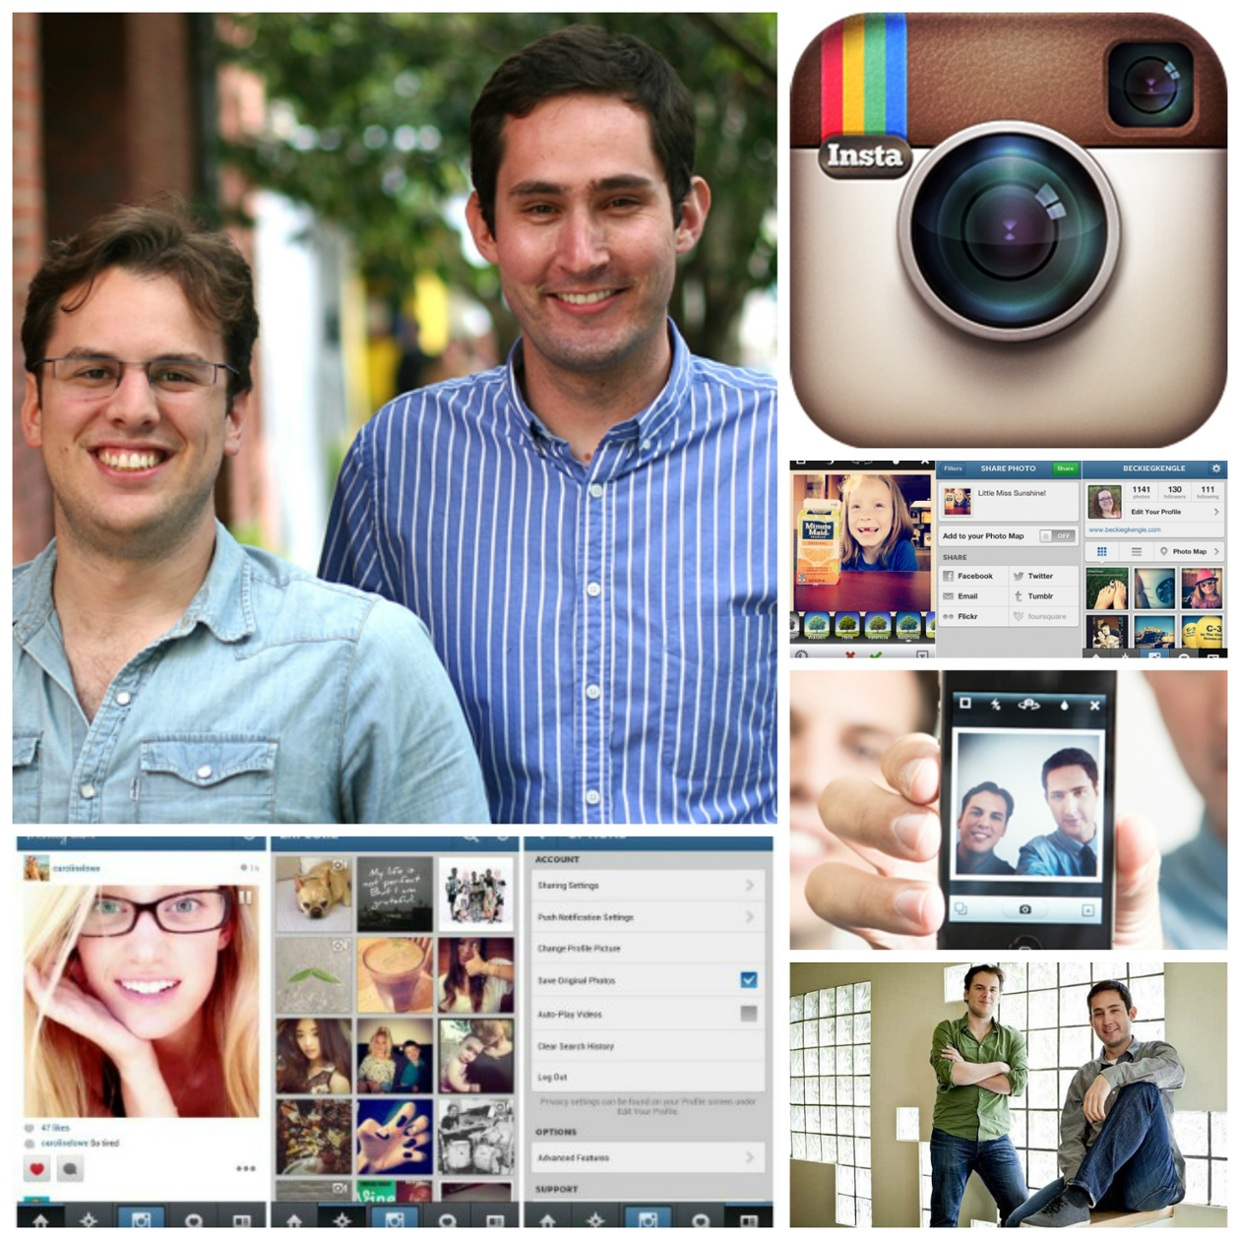 Instagram - Kevin Systrom and Mike Krieger